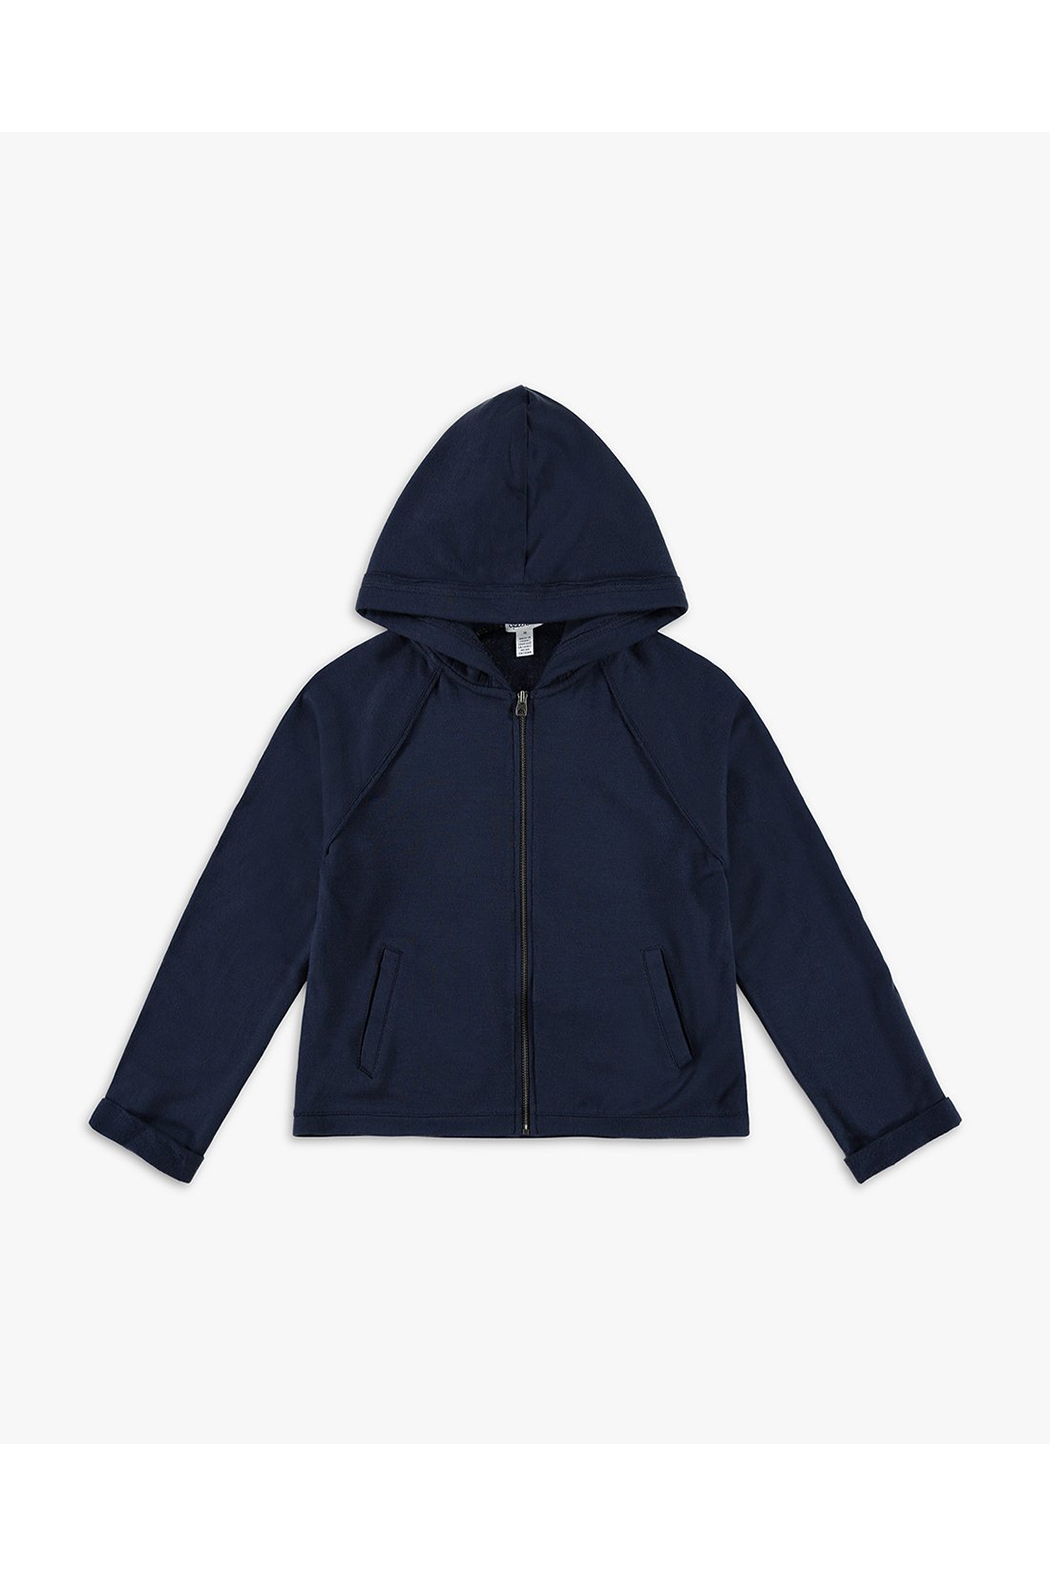 Splendid Super Soft French Terry Hoodie - Main Image